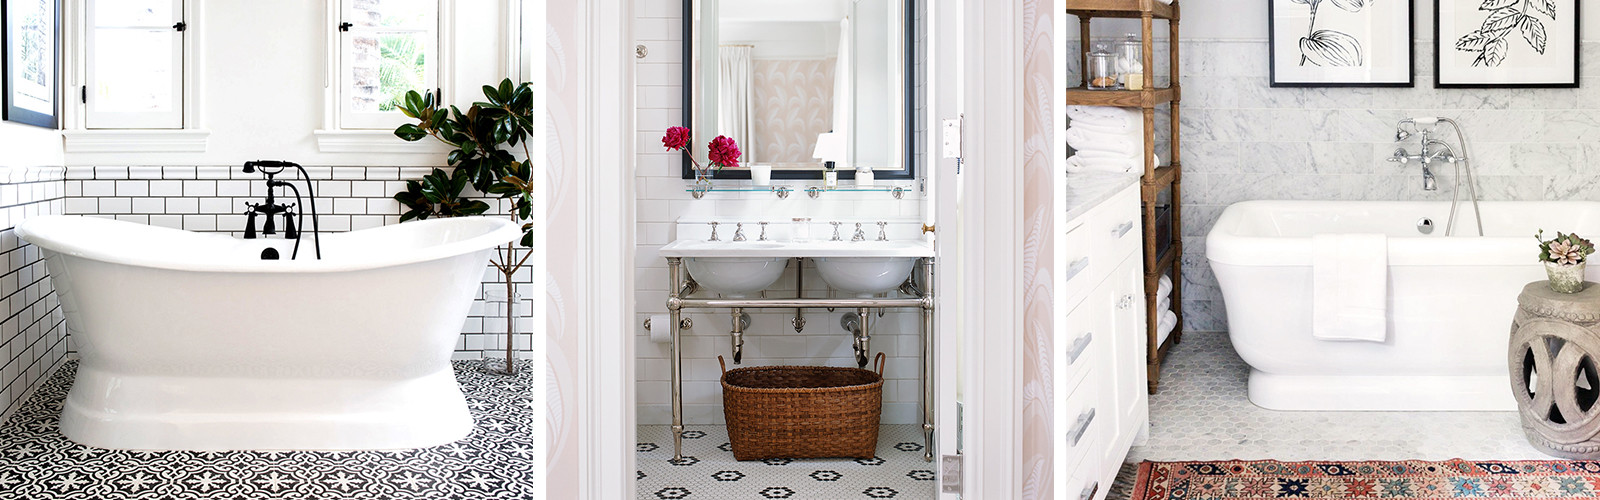 7 Bathroom Decorating Mistakes That Make It Look Cheap | MyDomaine